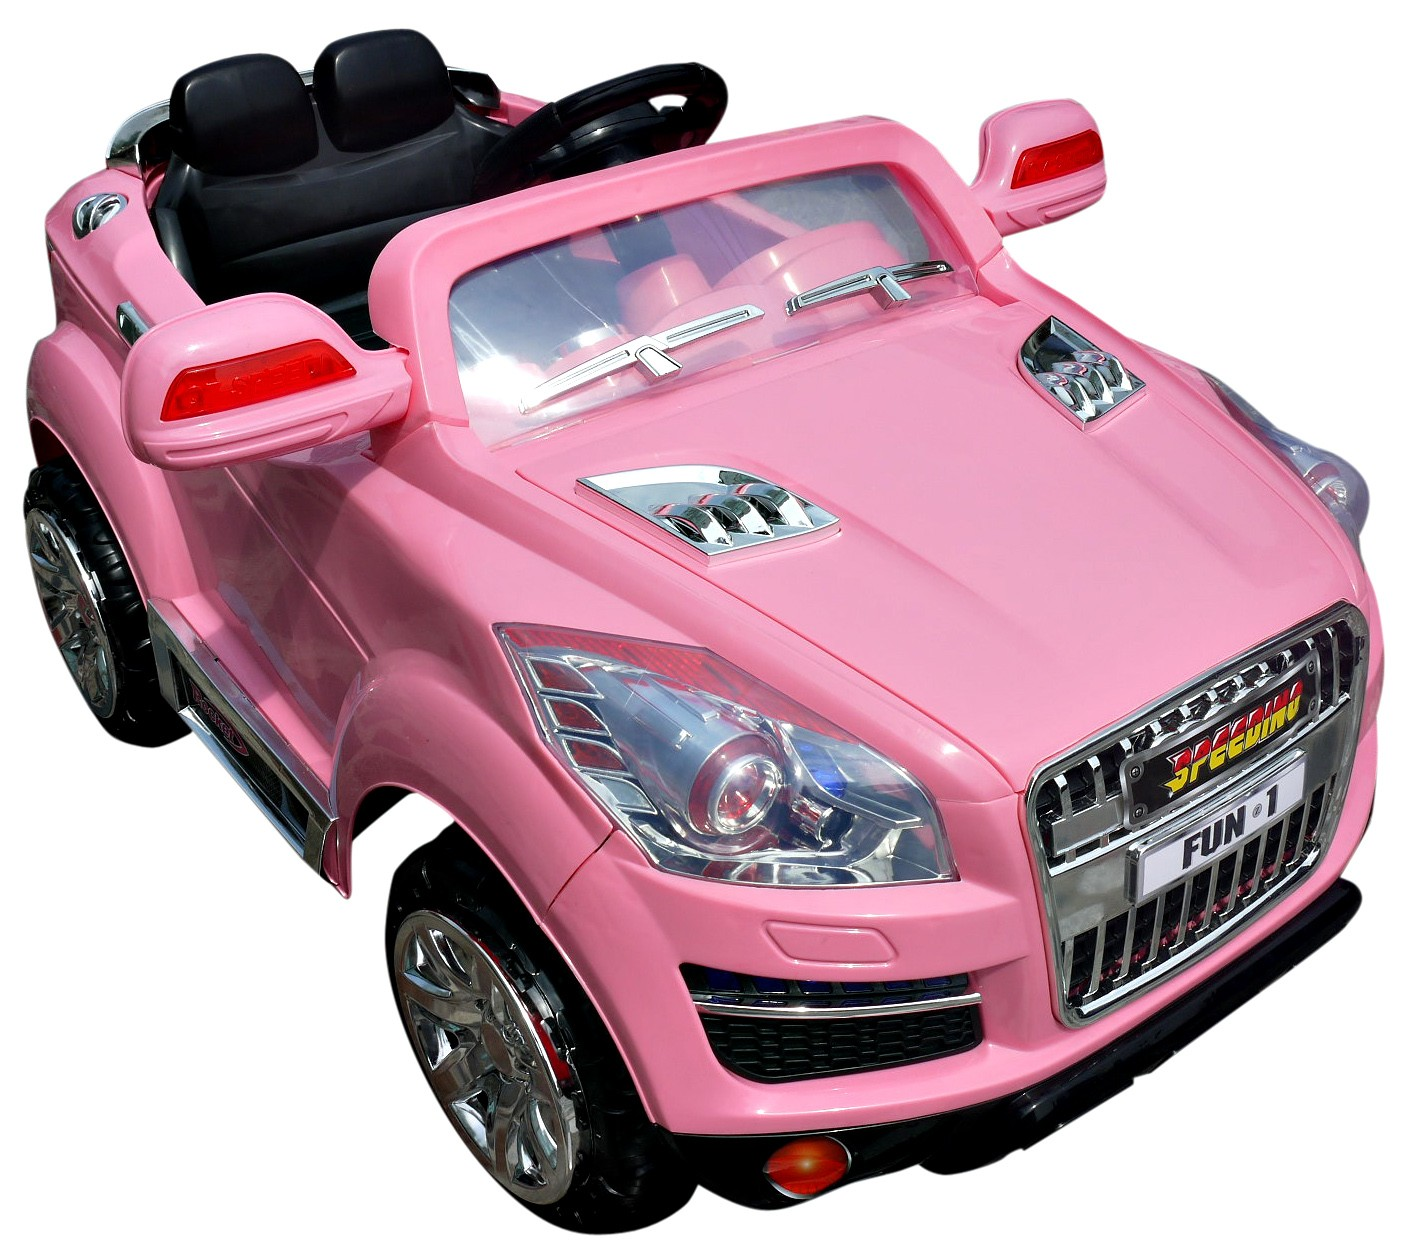 Toddler Electric Cars South Africa